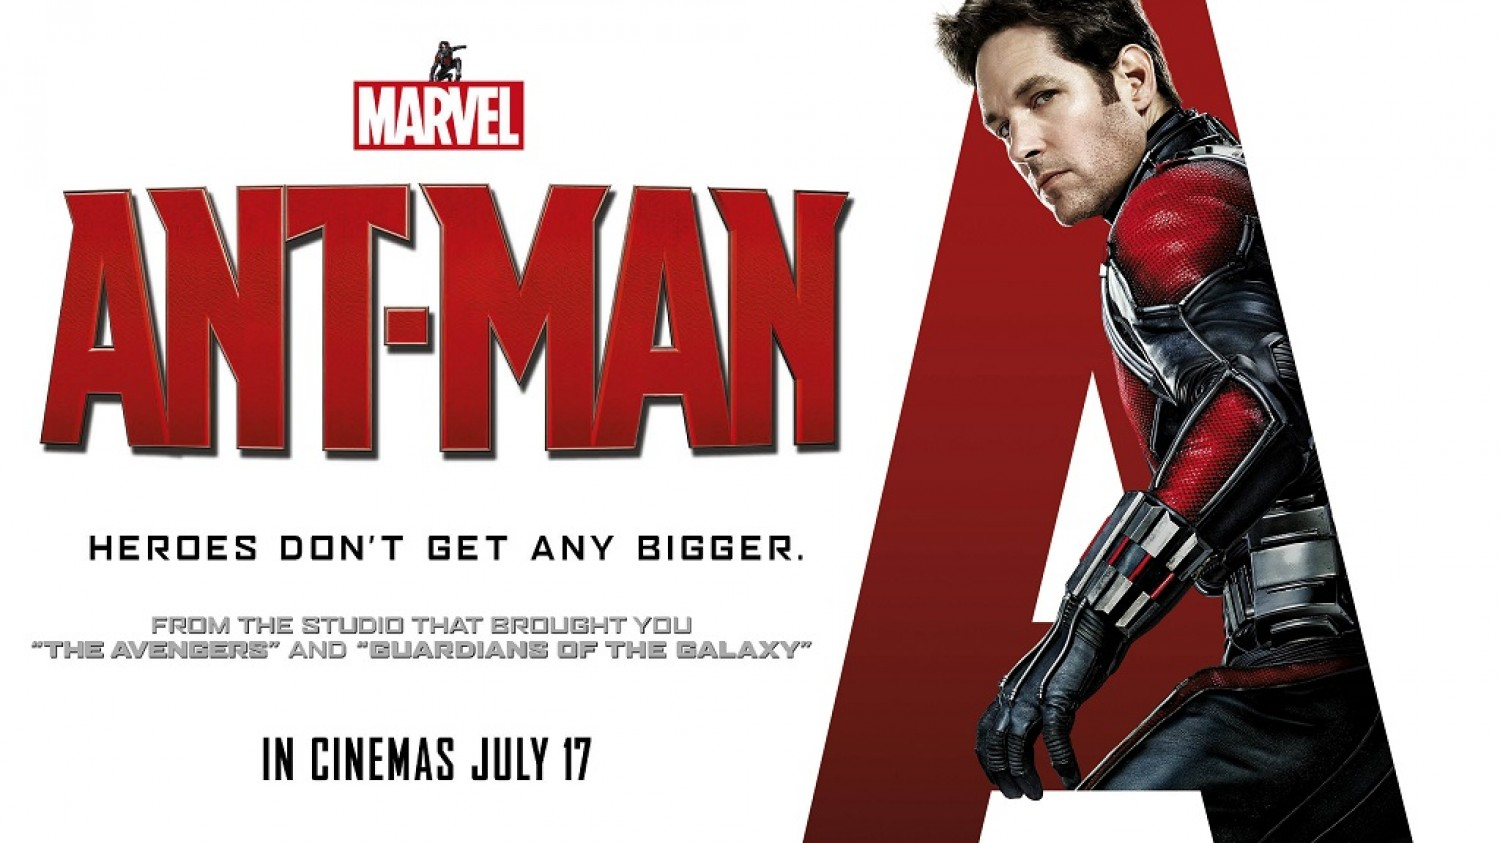 Ant-Man (2015) by Peyton Reed - Movie Review